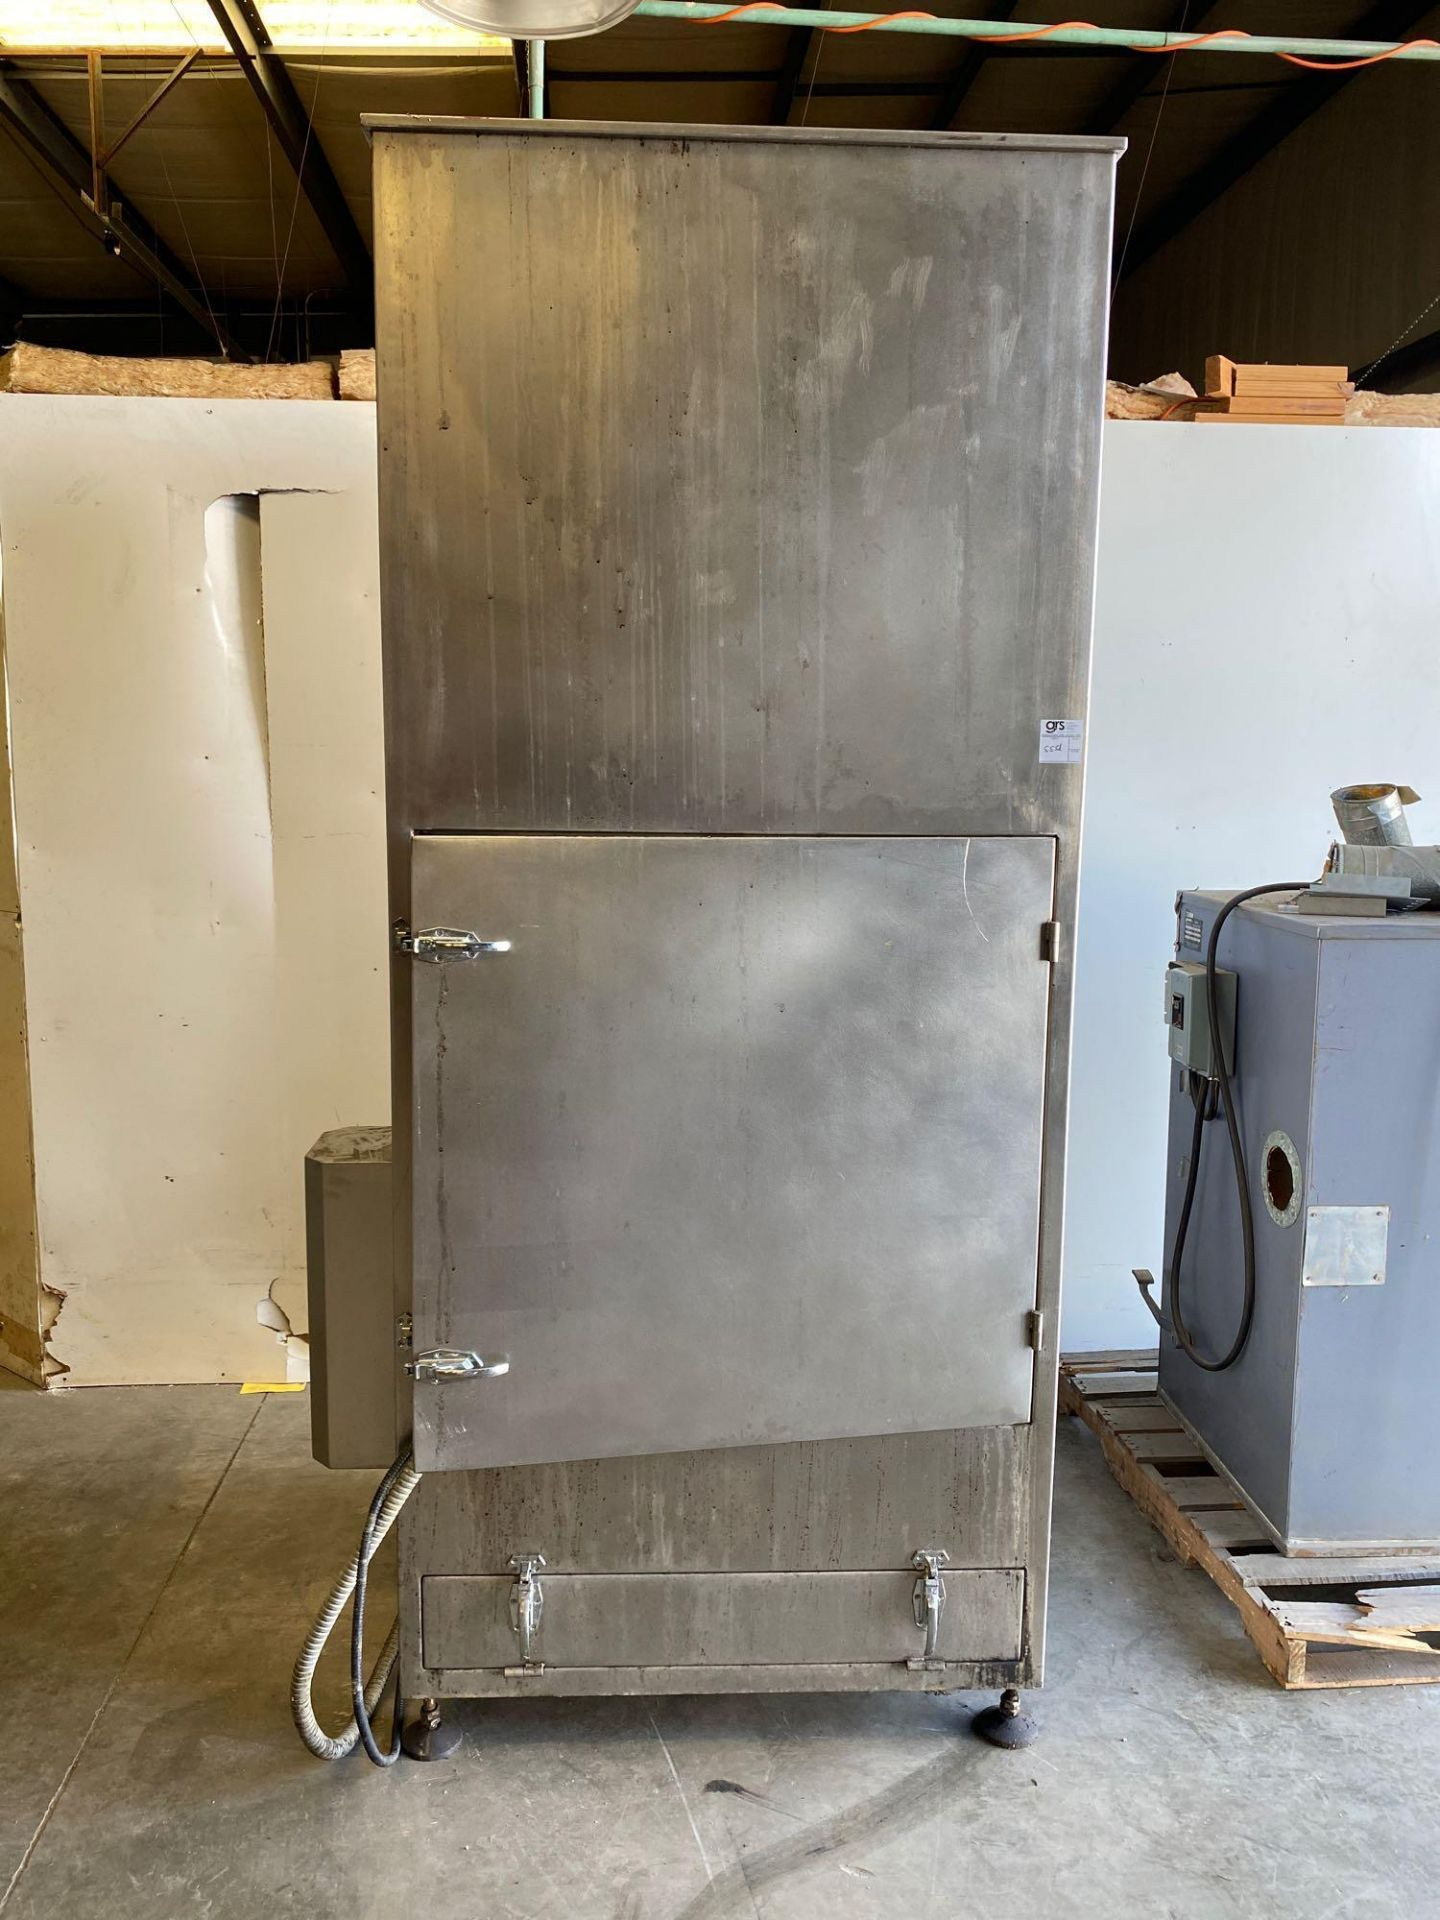 Air Exhaust Dust Collection Cabinet - Goes with 555C